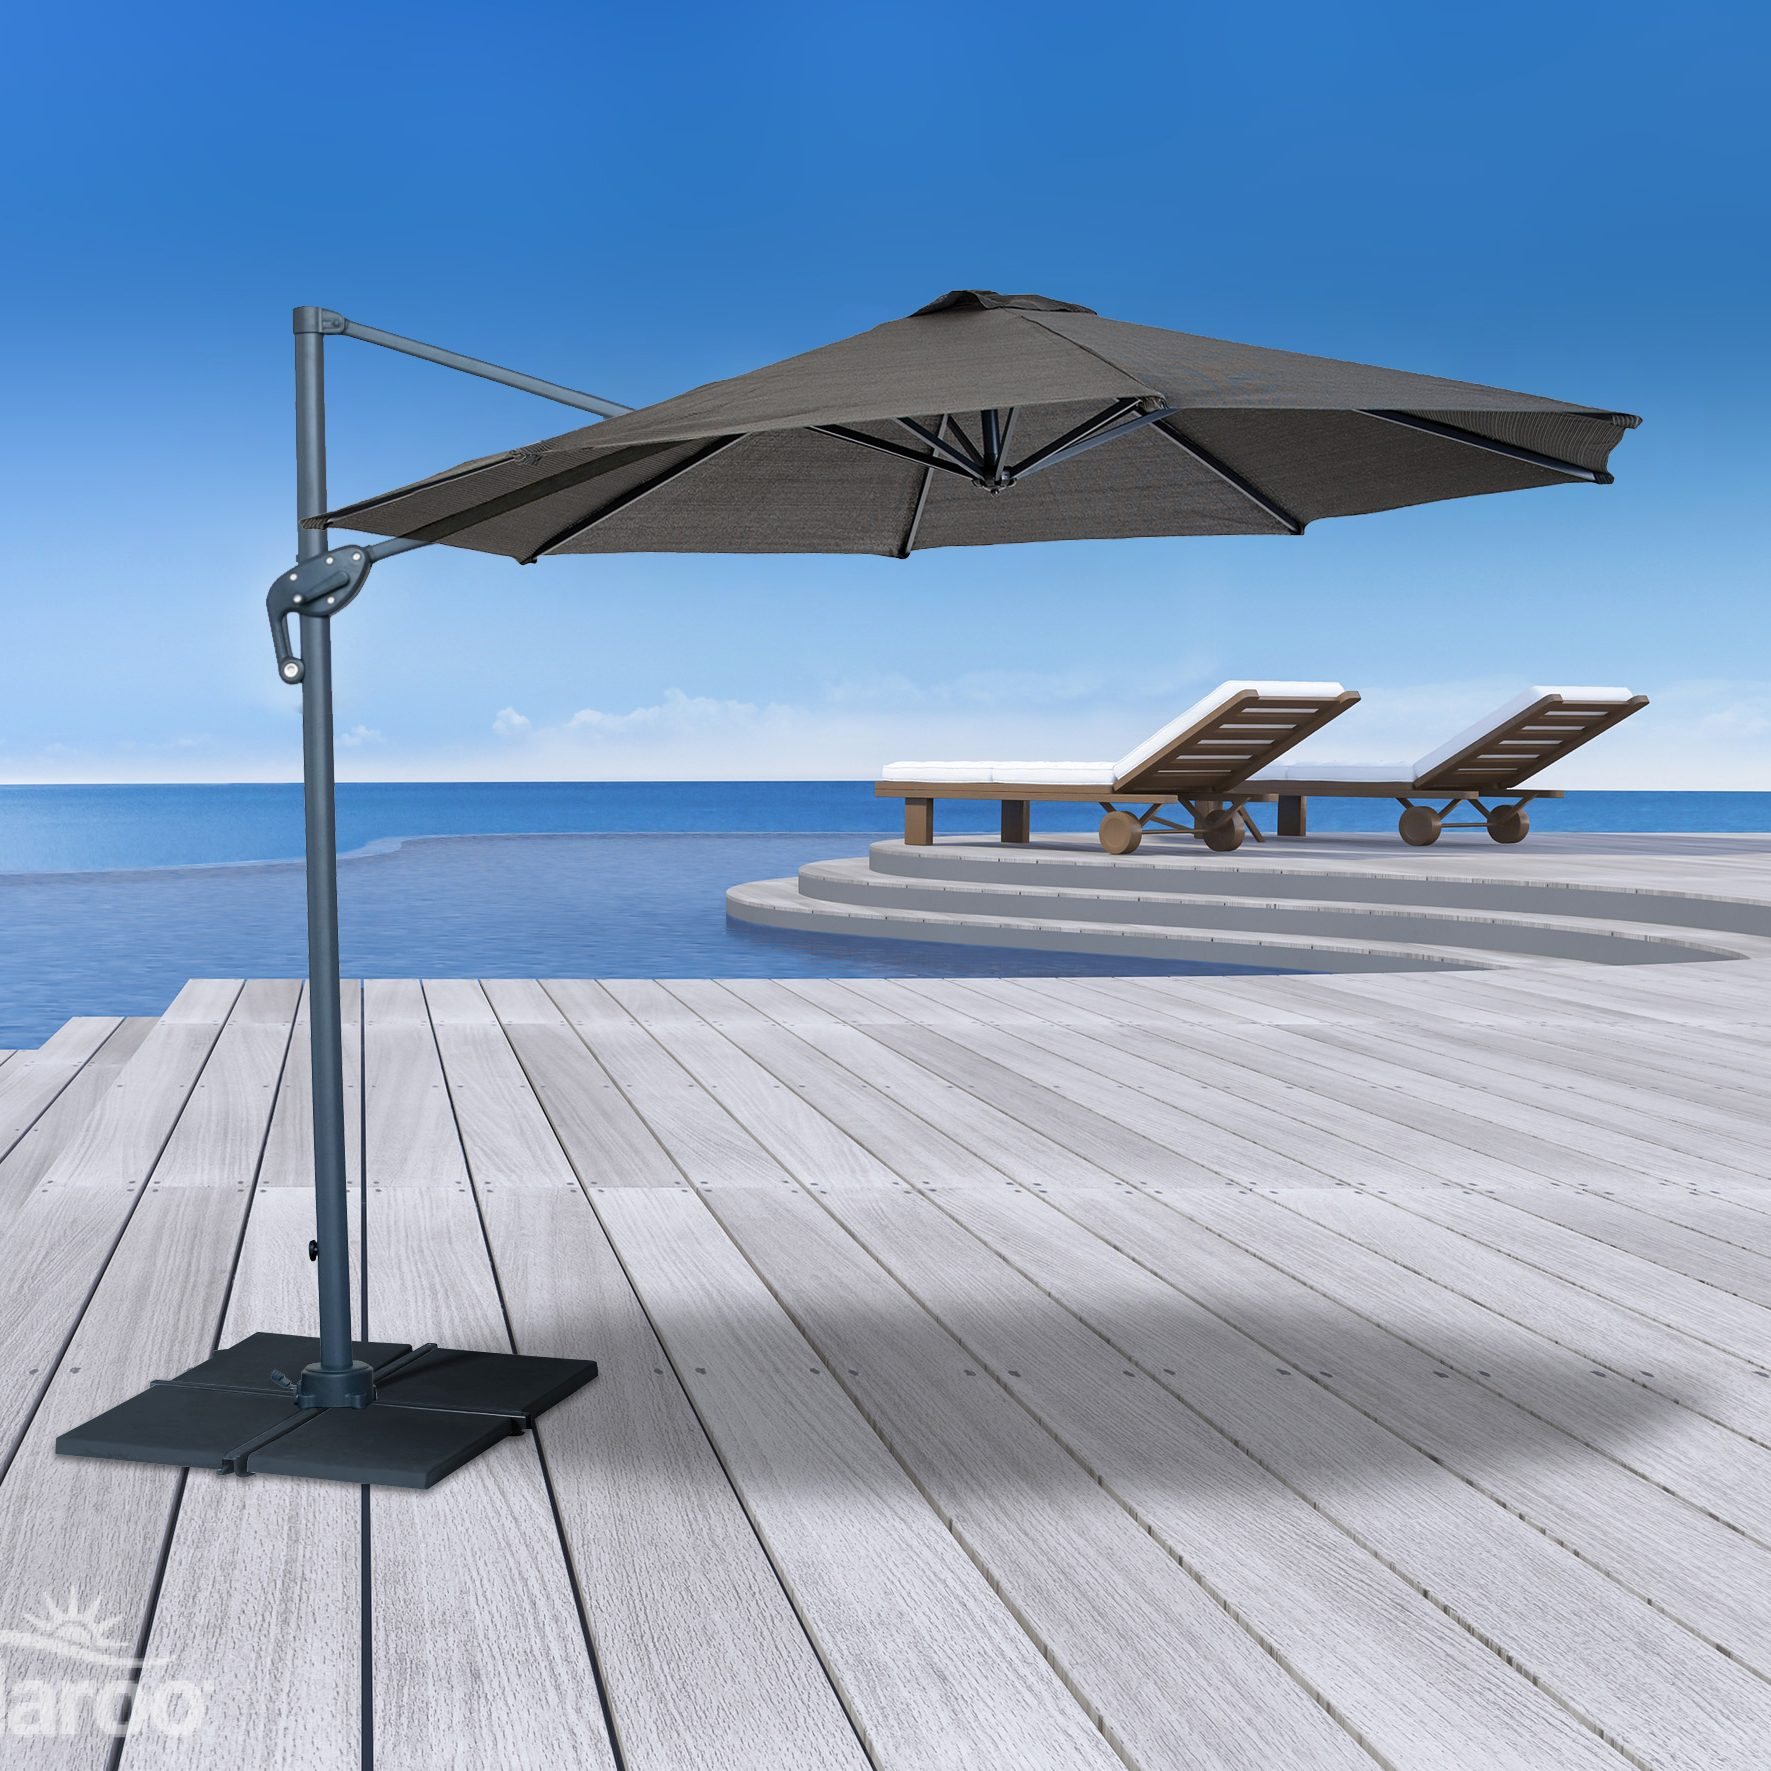 Refurbished 3m Round Cantilever Umbrella